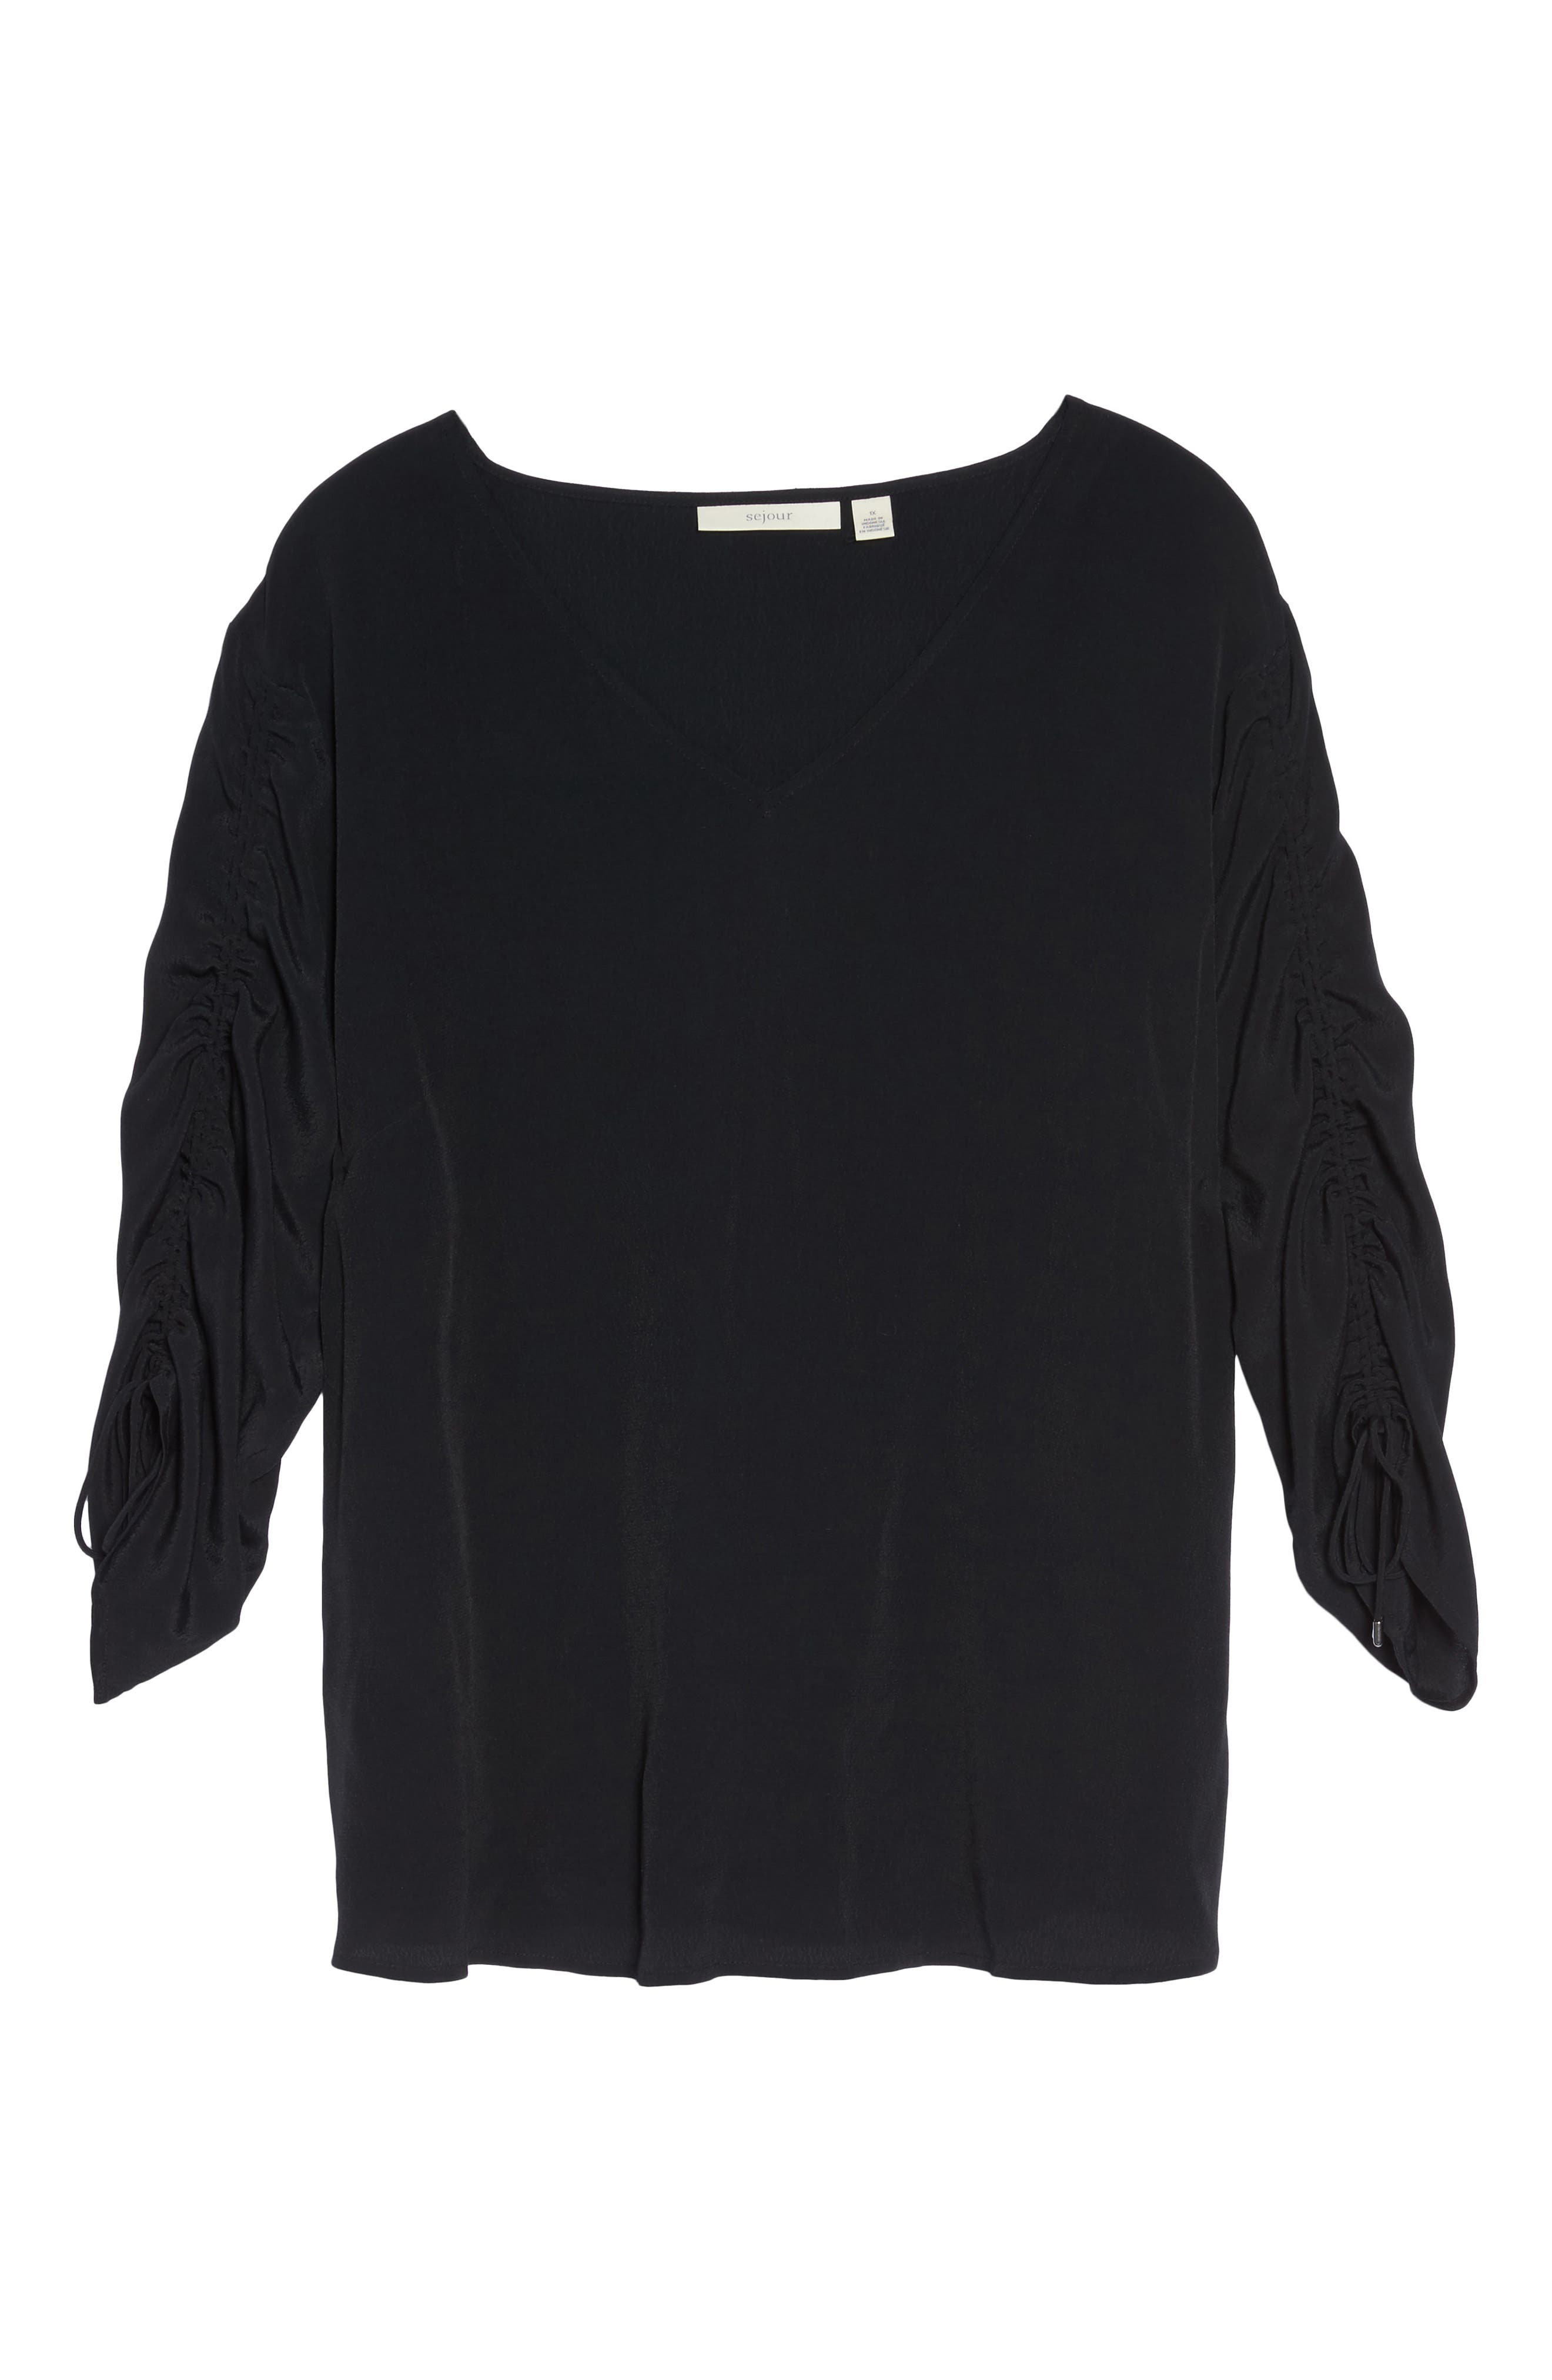 Cinched Sleeve Top,                             Alternate thumbnail 16, color,